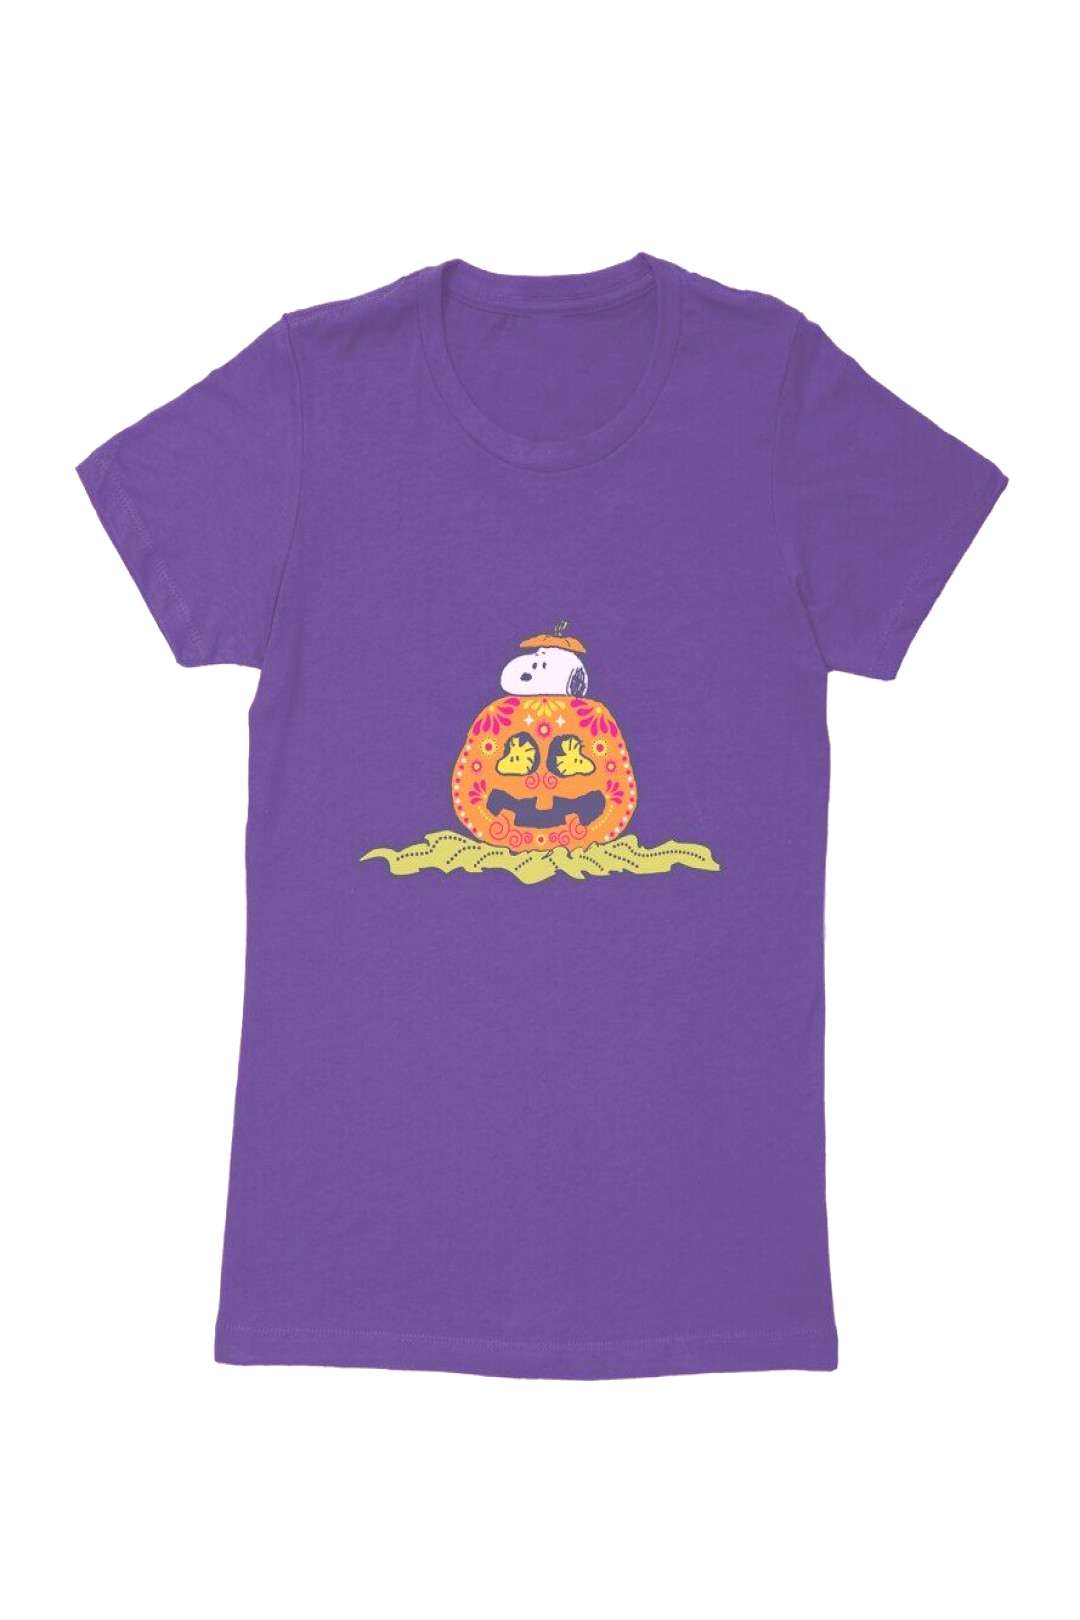 Peanuts Snoopy Day Of The Dead Pumpkin Womens T-Shirt -  Peanuts Snoopy Day Of The Dead Pumpkin Wom